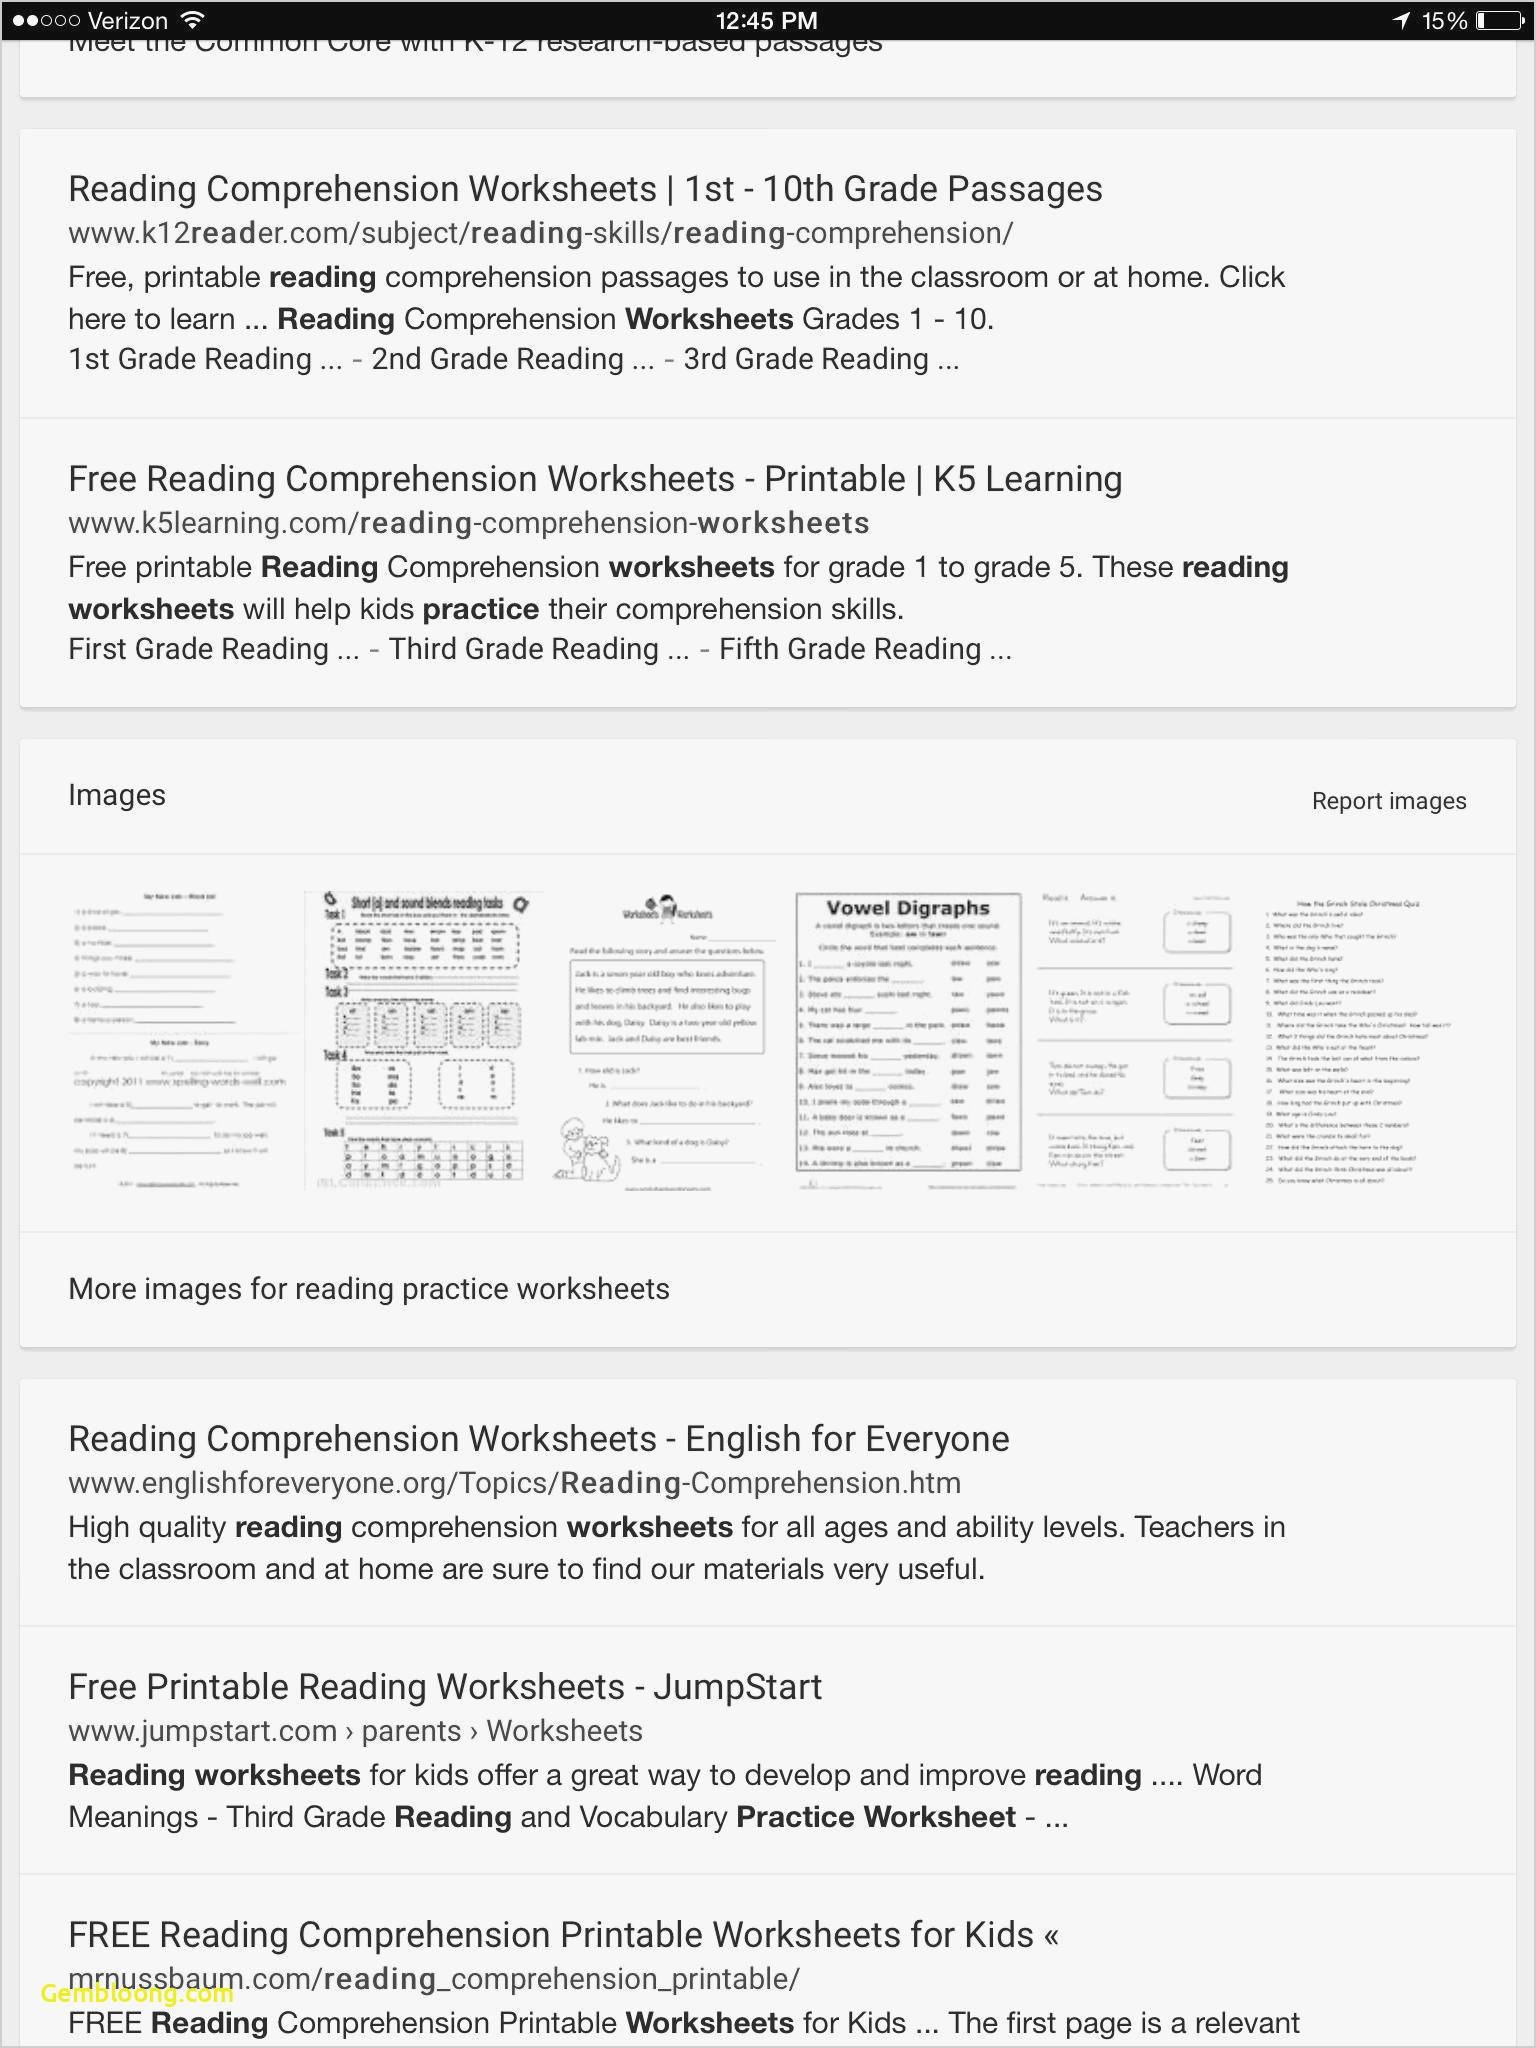 Reading Comprehension Worksheets For 1St Grade - Cramerforcongress - Free Printable 3Rd Grade Reading Worksheets